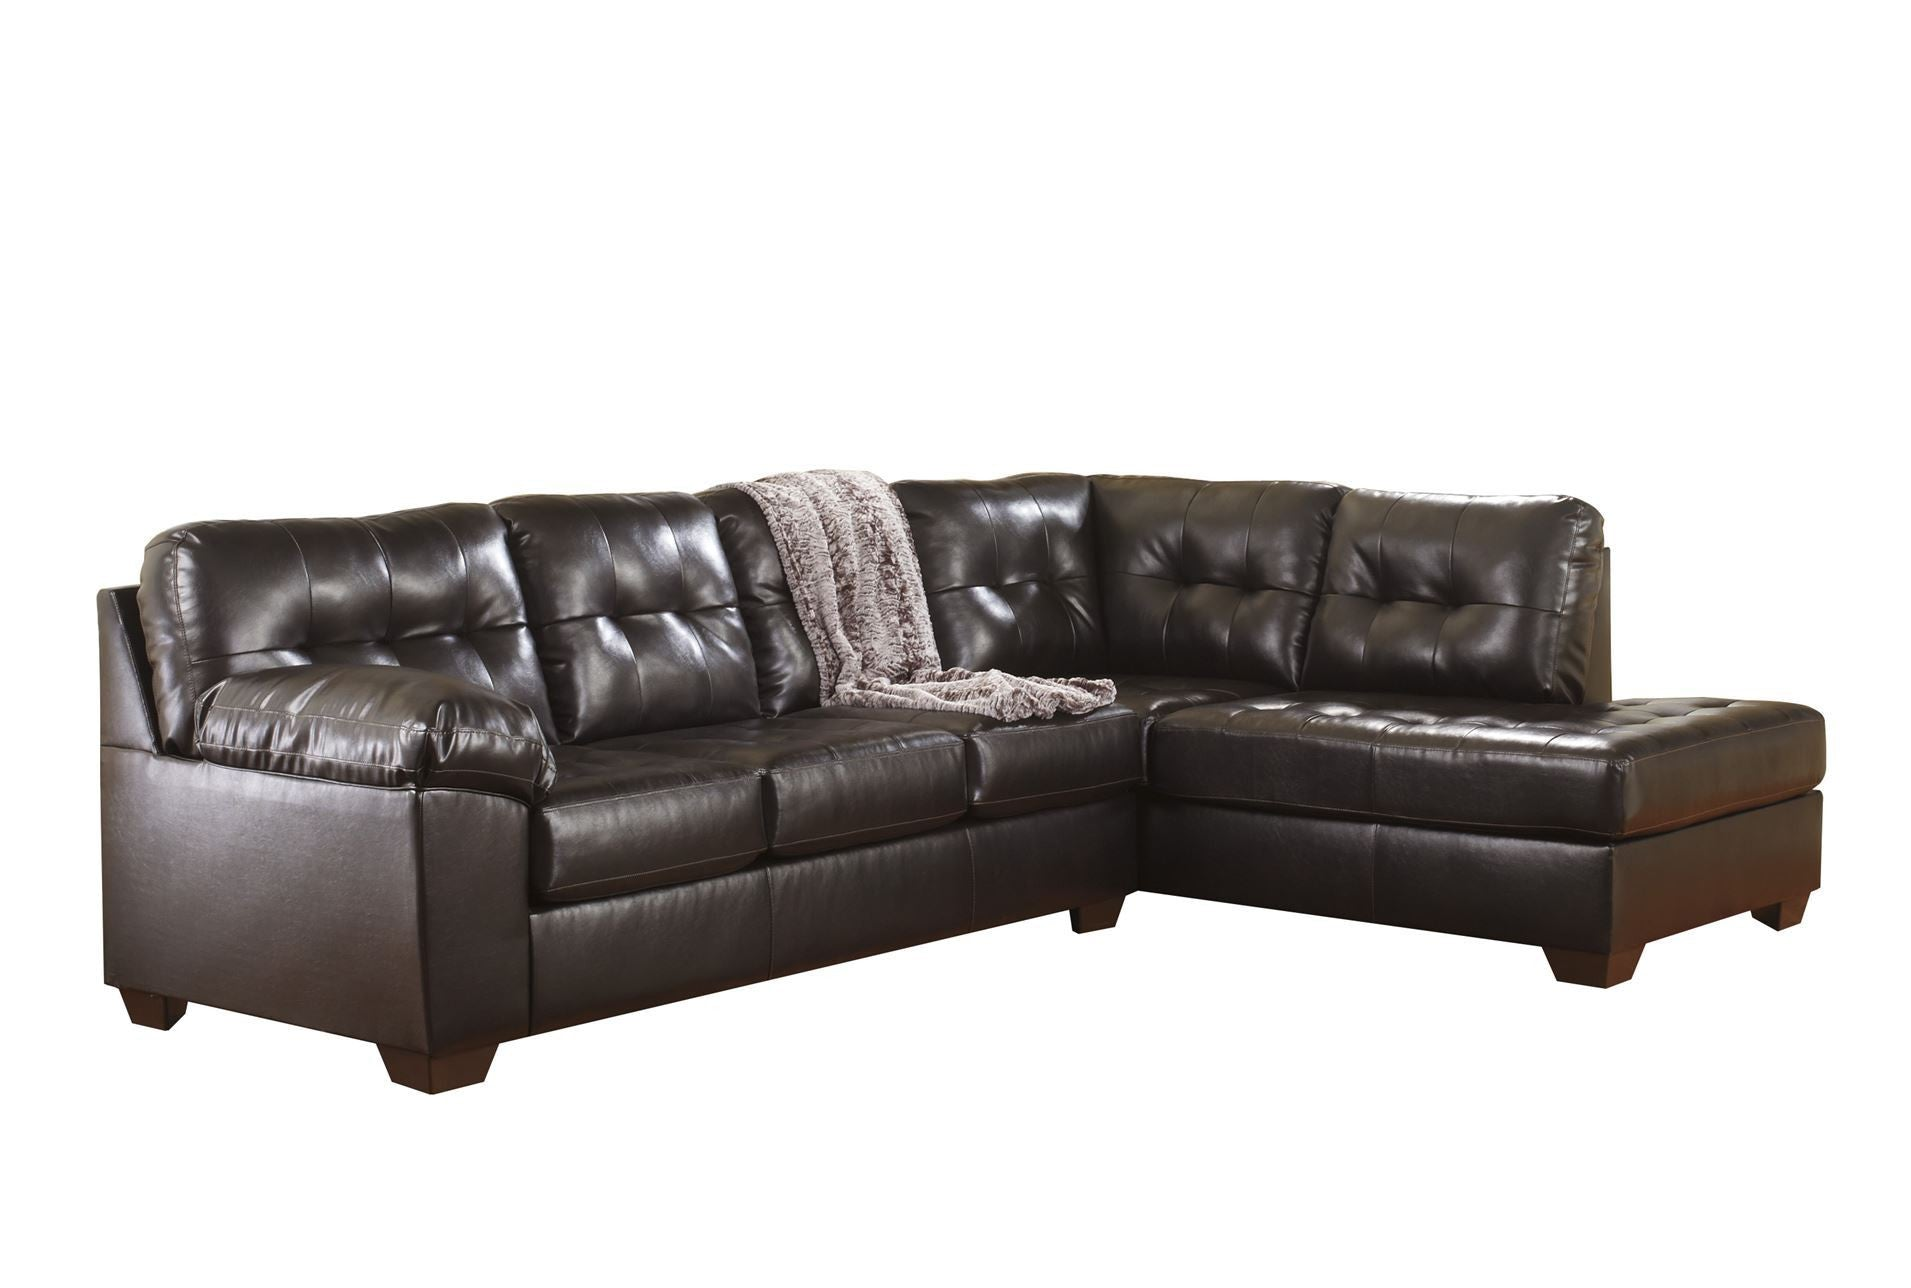 Products – The Philadelphia Sofa Store